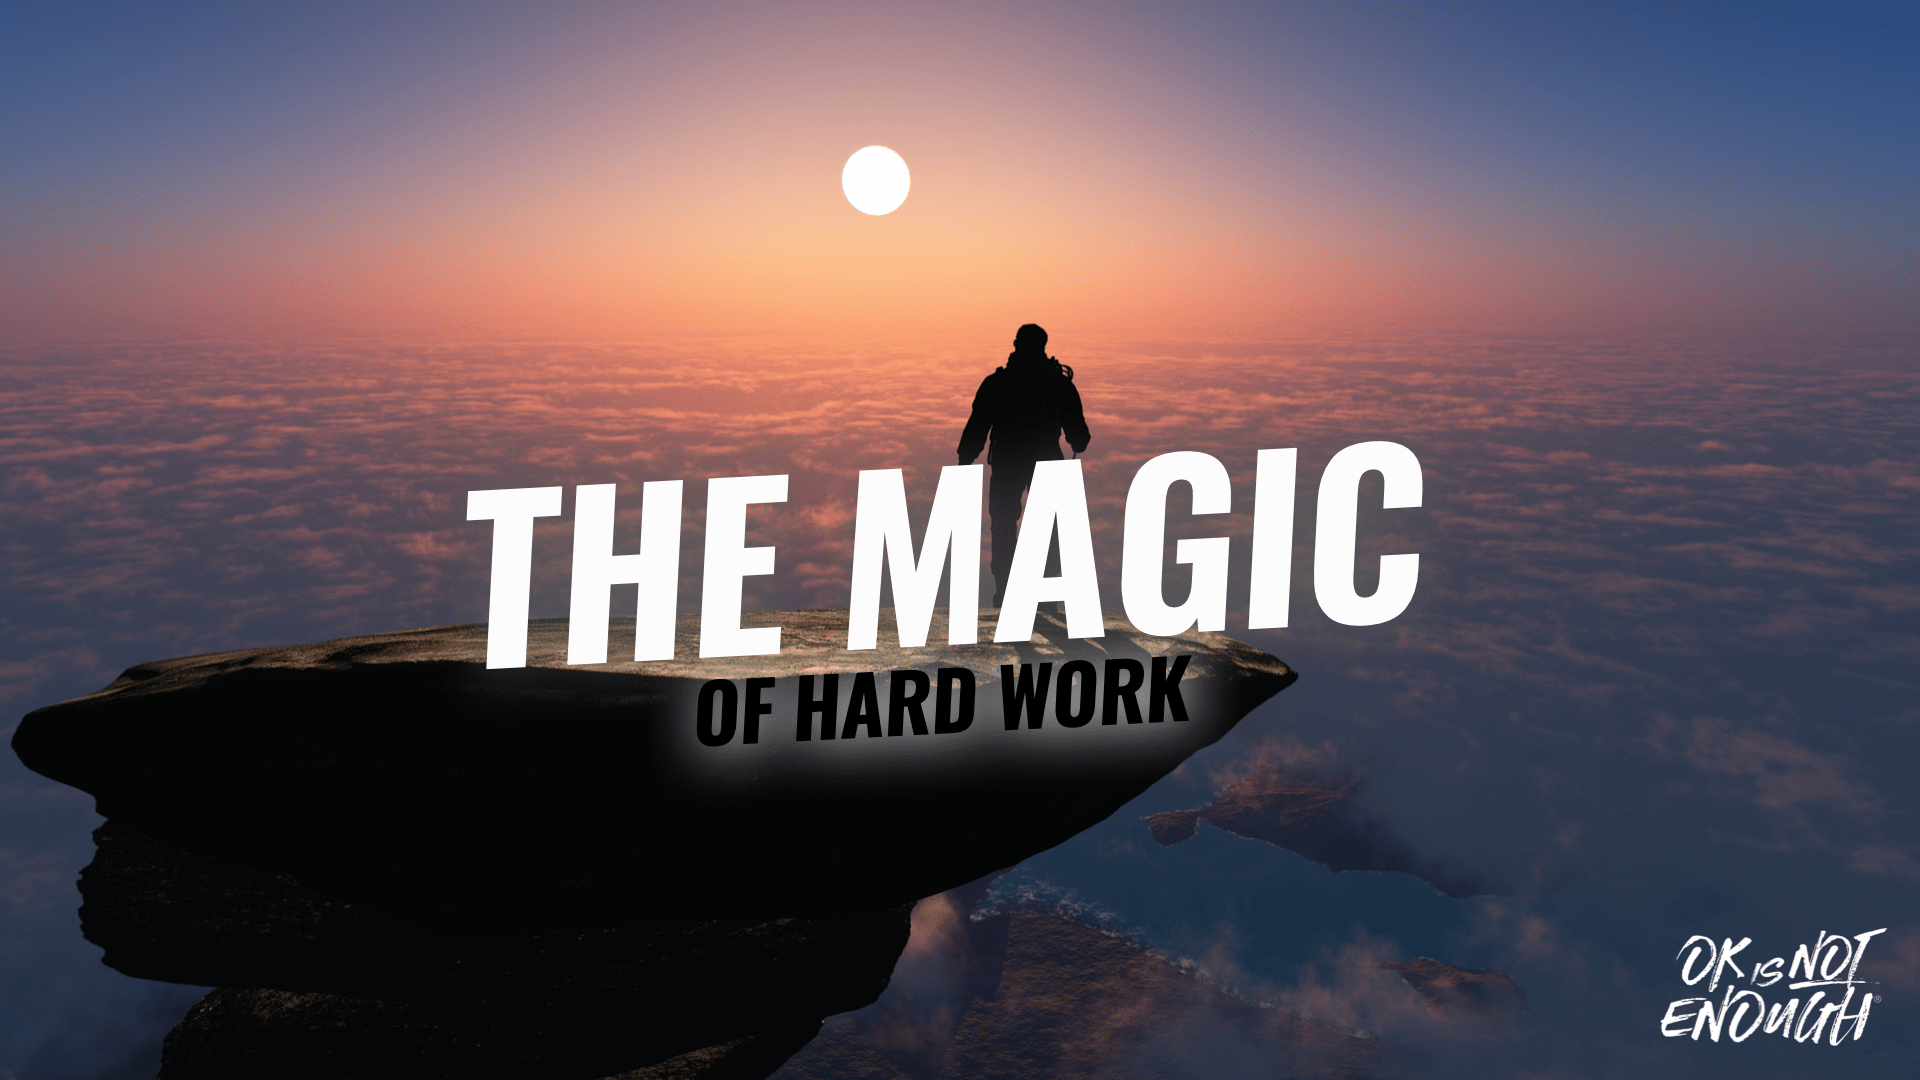 The Magic of Hard Work